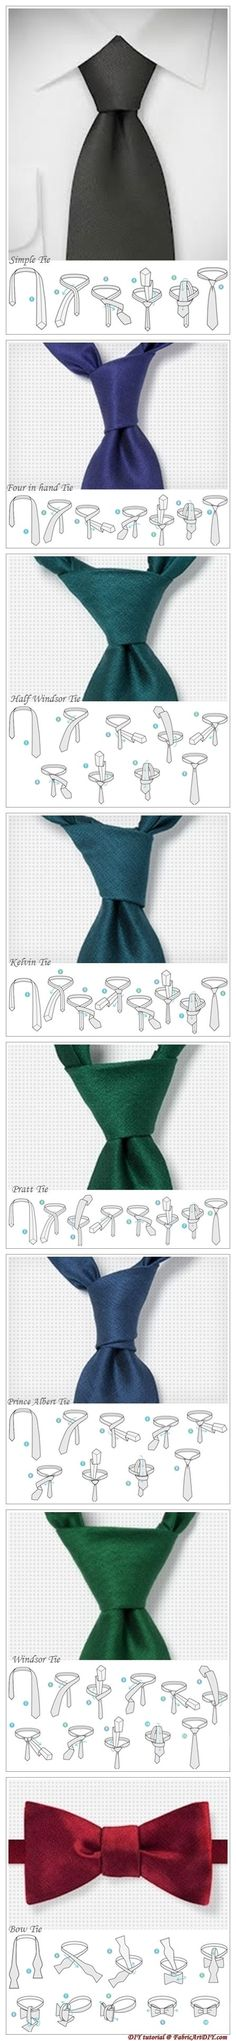 Classic tie knot instructions - m preach Gentleman Mode, Gentleman Style, Mode Masculine, Style Masculin, Suit And Tie, Dress Codes, Mens Suits, Mens Fashion, Fashion Tips